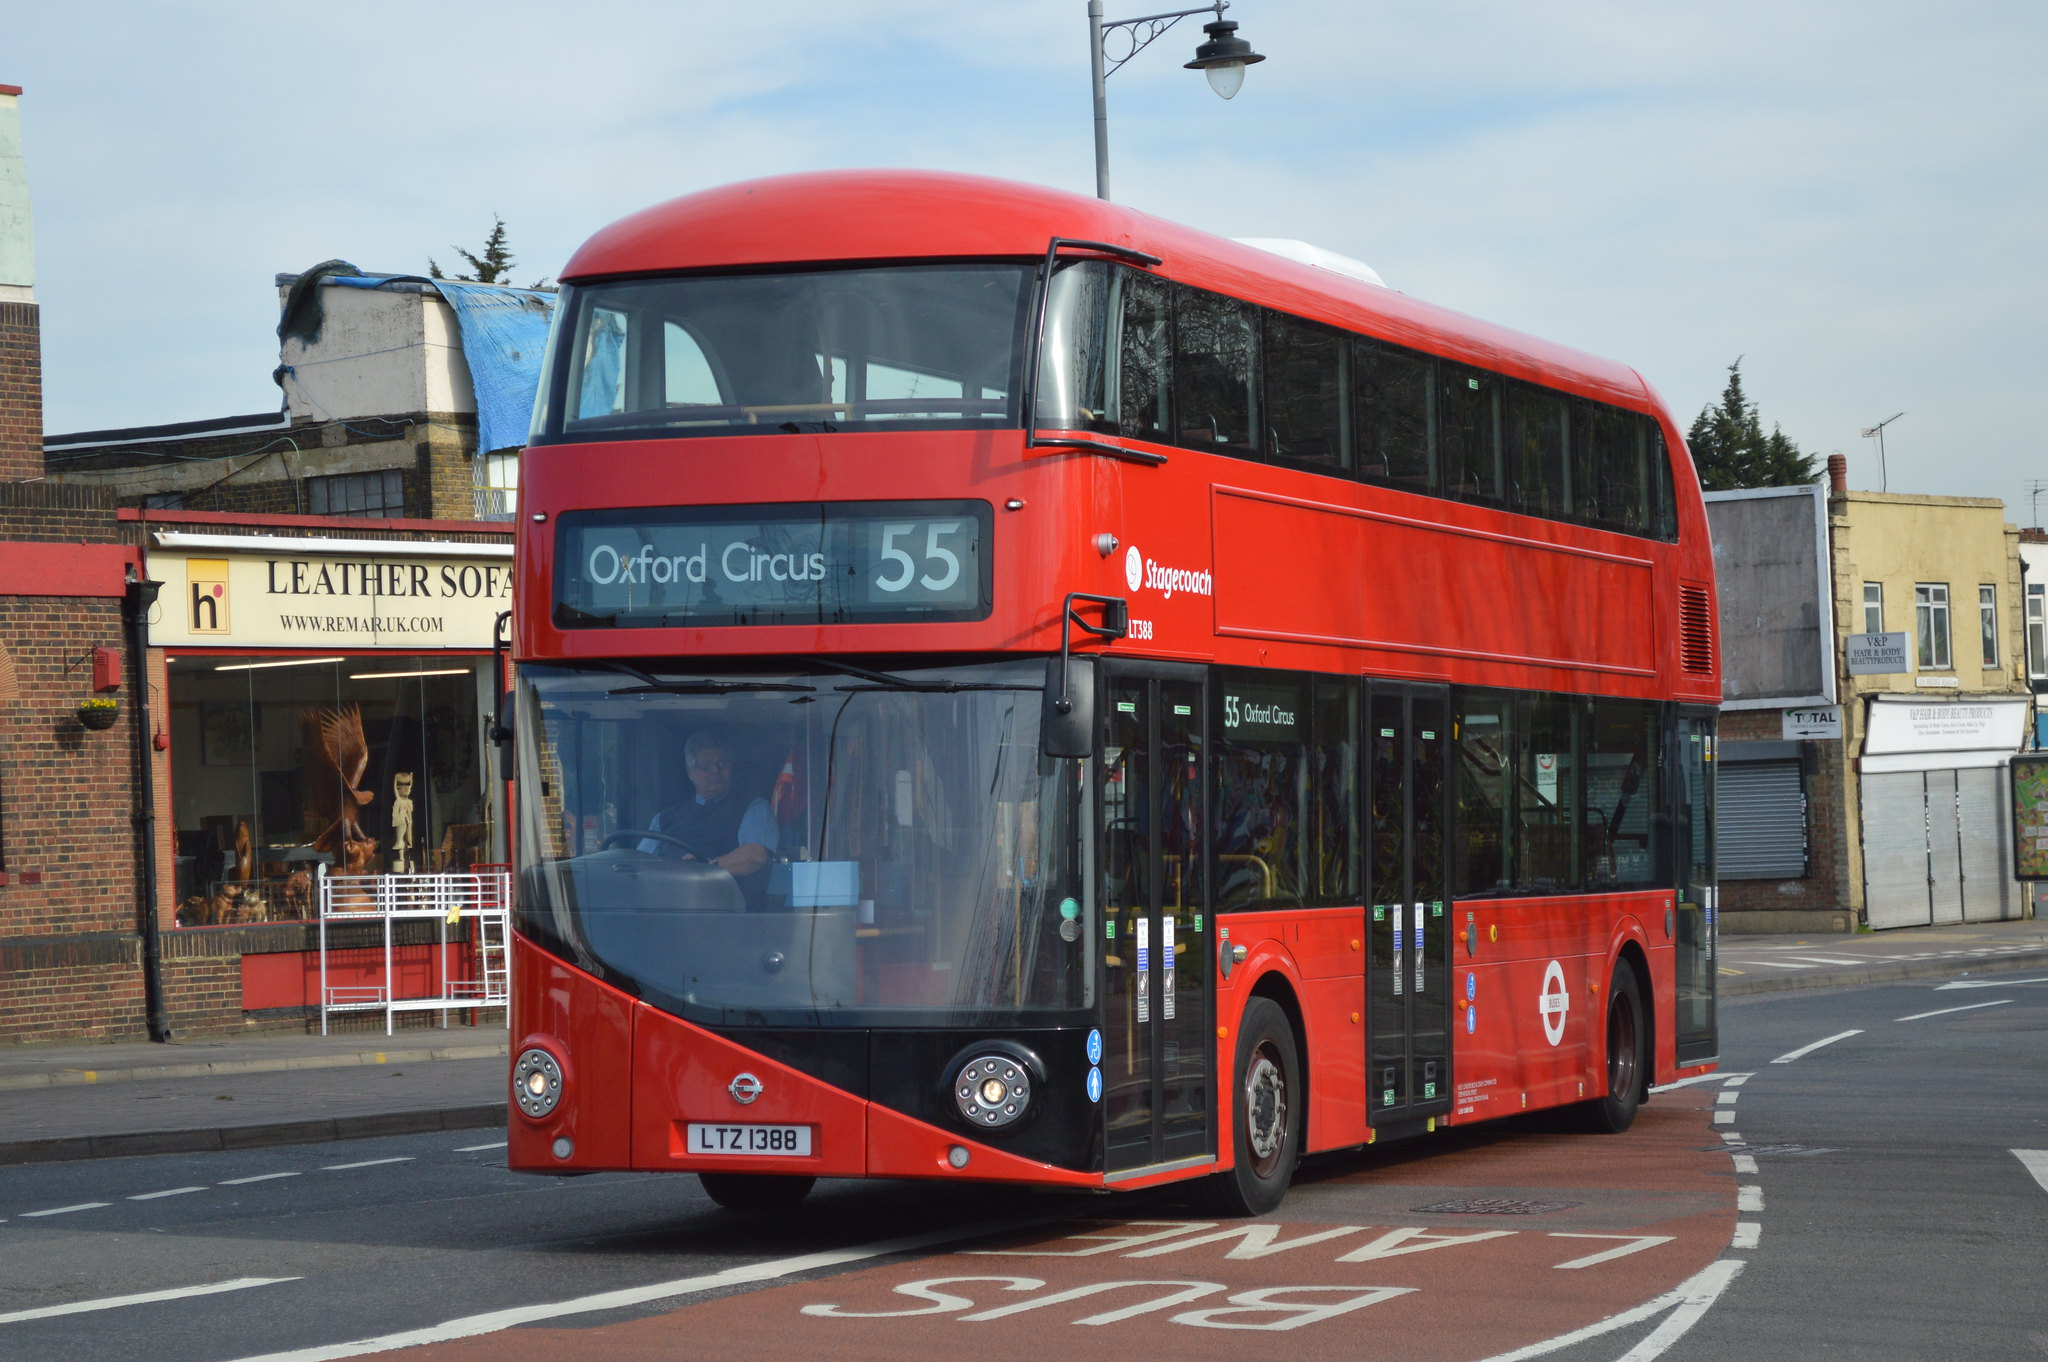 #AYearOfBuses 355: Walthamstow – Oxford Circus